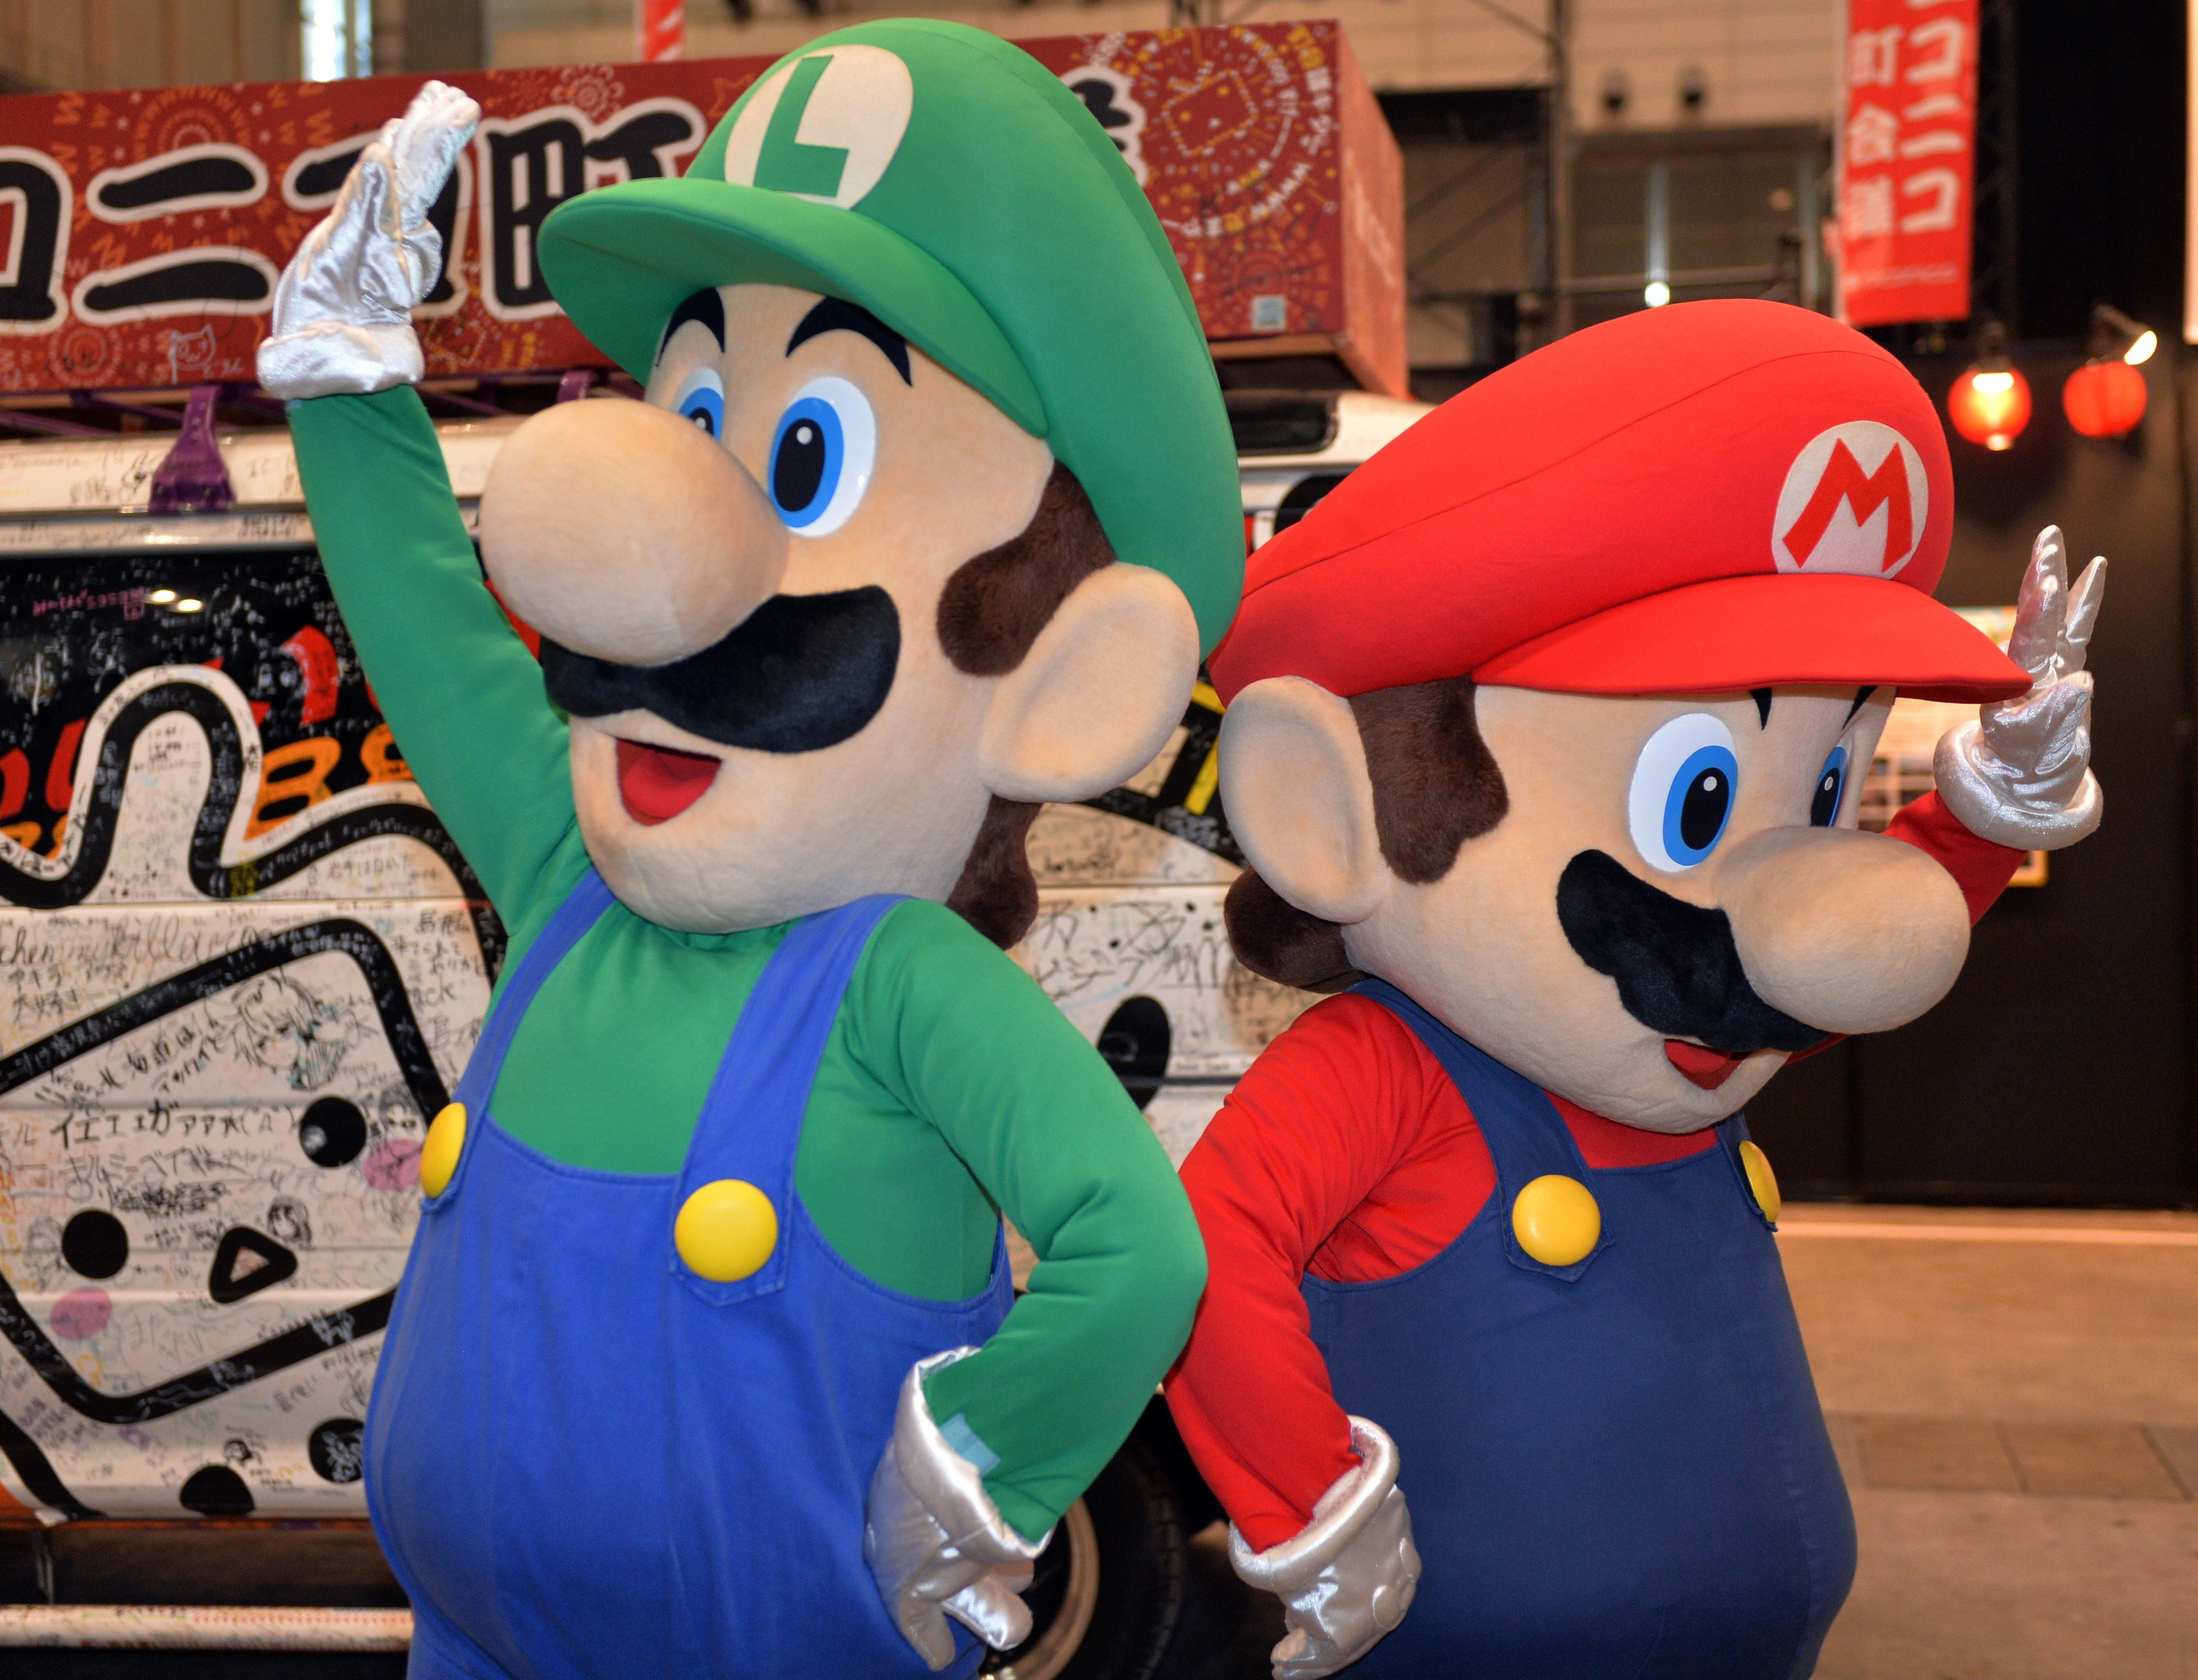 Nintendo's characters Super Mario and Luigi performing in Tokyo, Japan, on April 26, 2014.